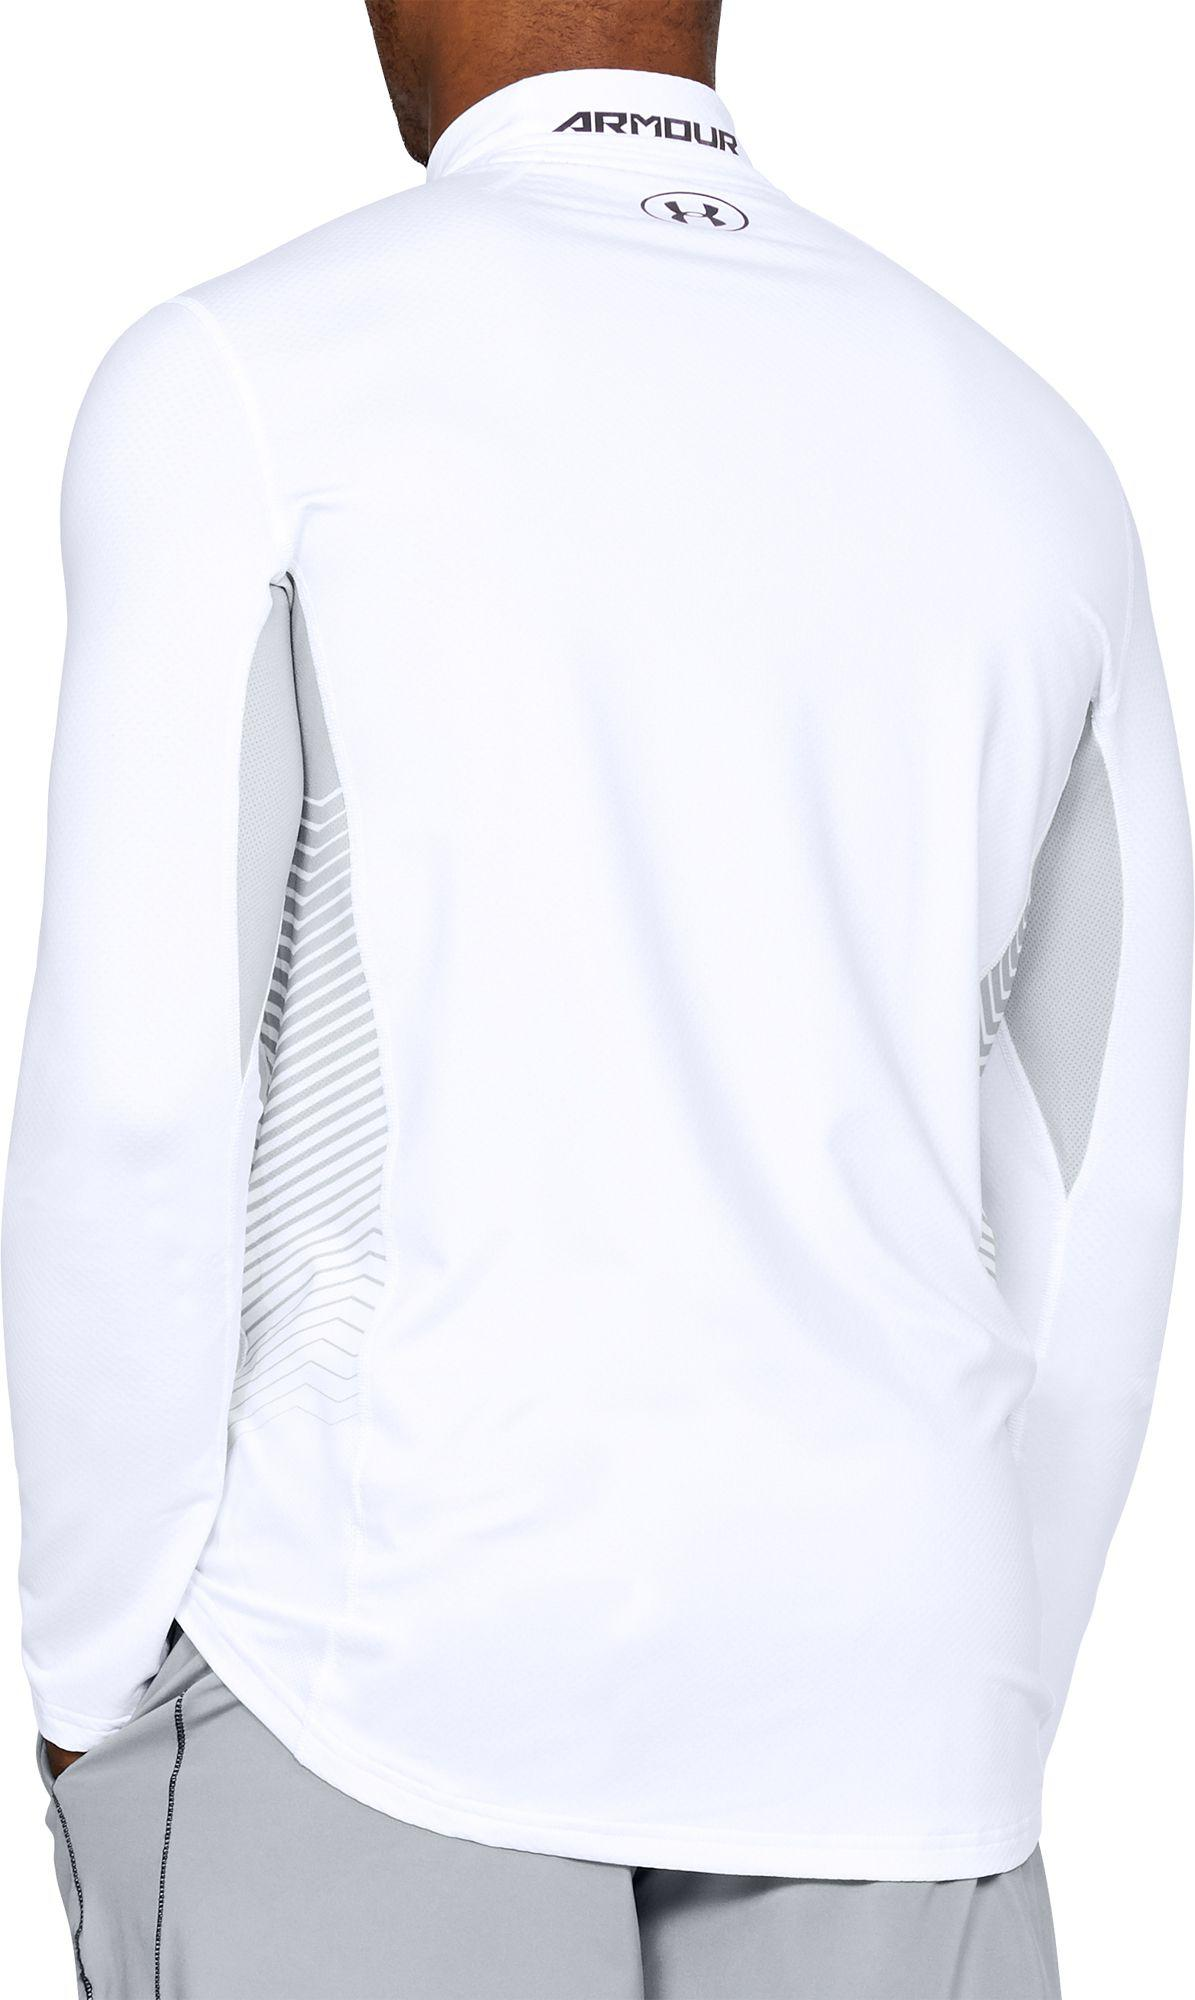 95566c604 Under Armour - White Coldgear Reactor Fitted Long Sleeve T-shirt for Men -  Lyst